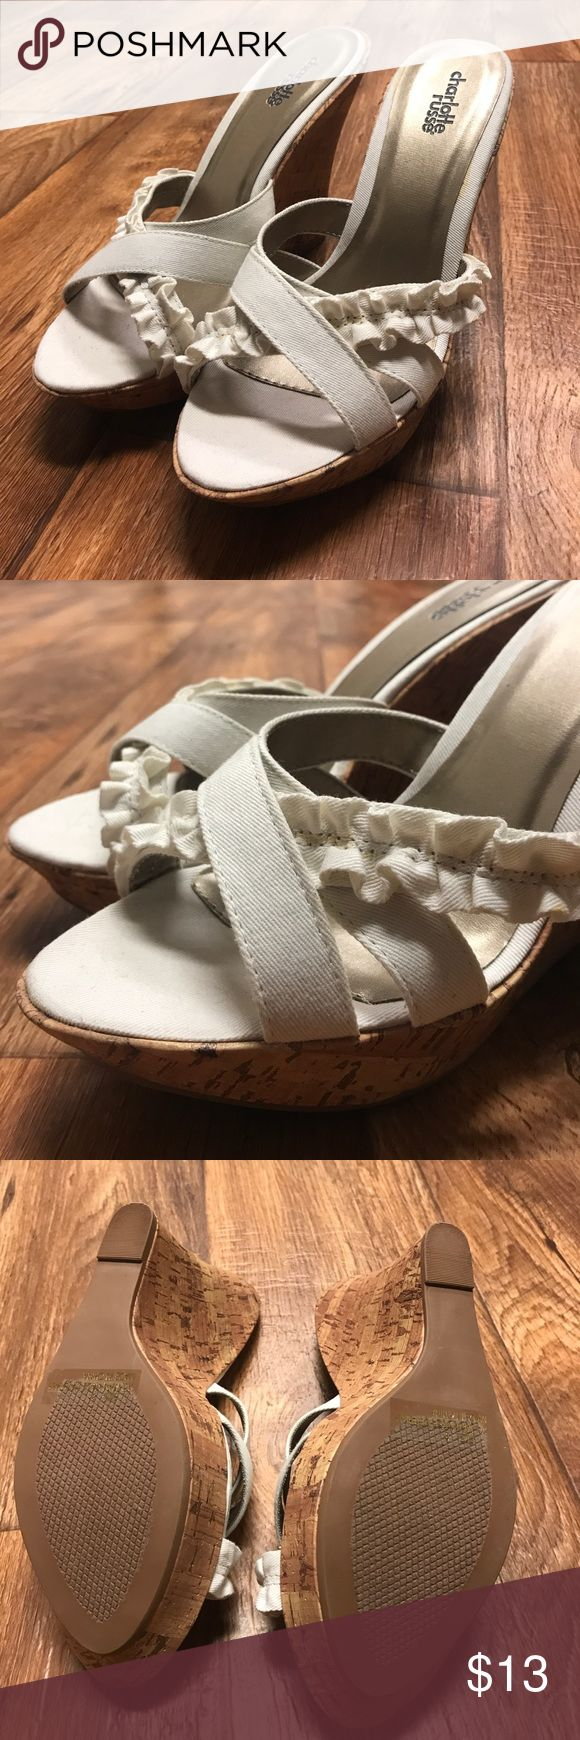 Cream wedges Never before worn cream/white wedges Charlotte Russe Shoes Wedges